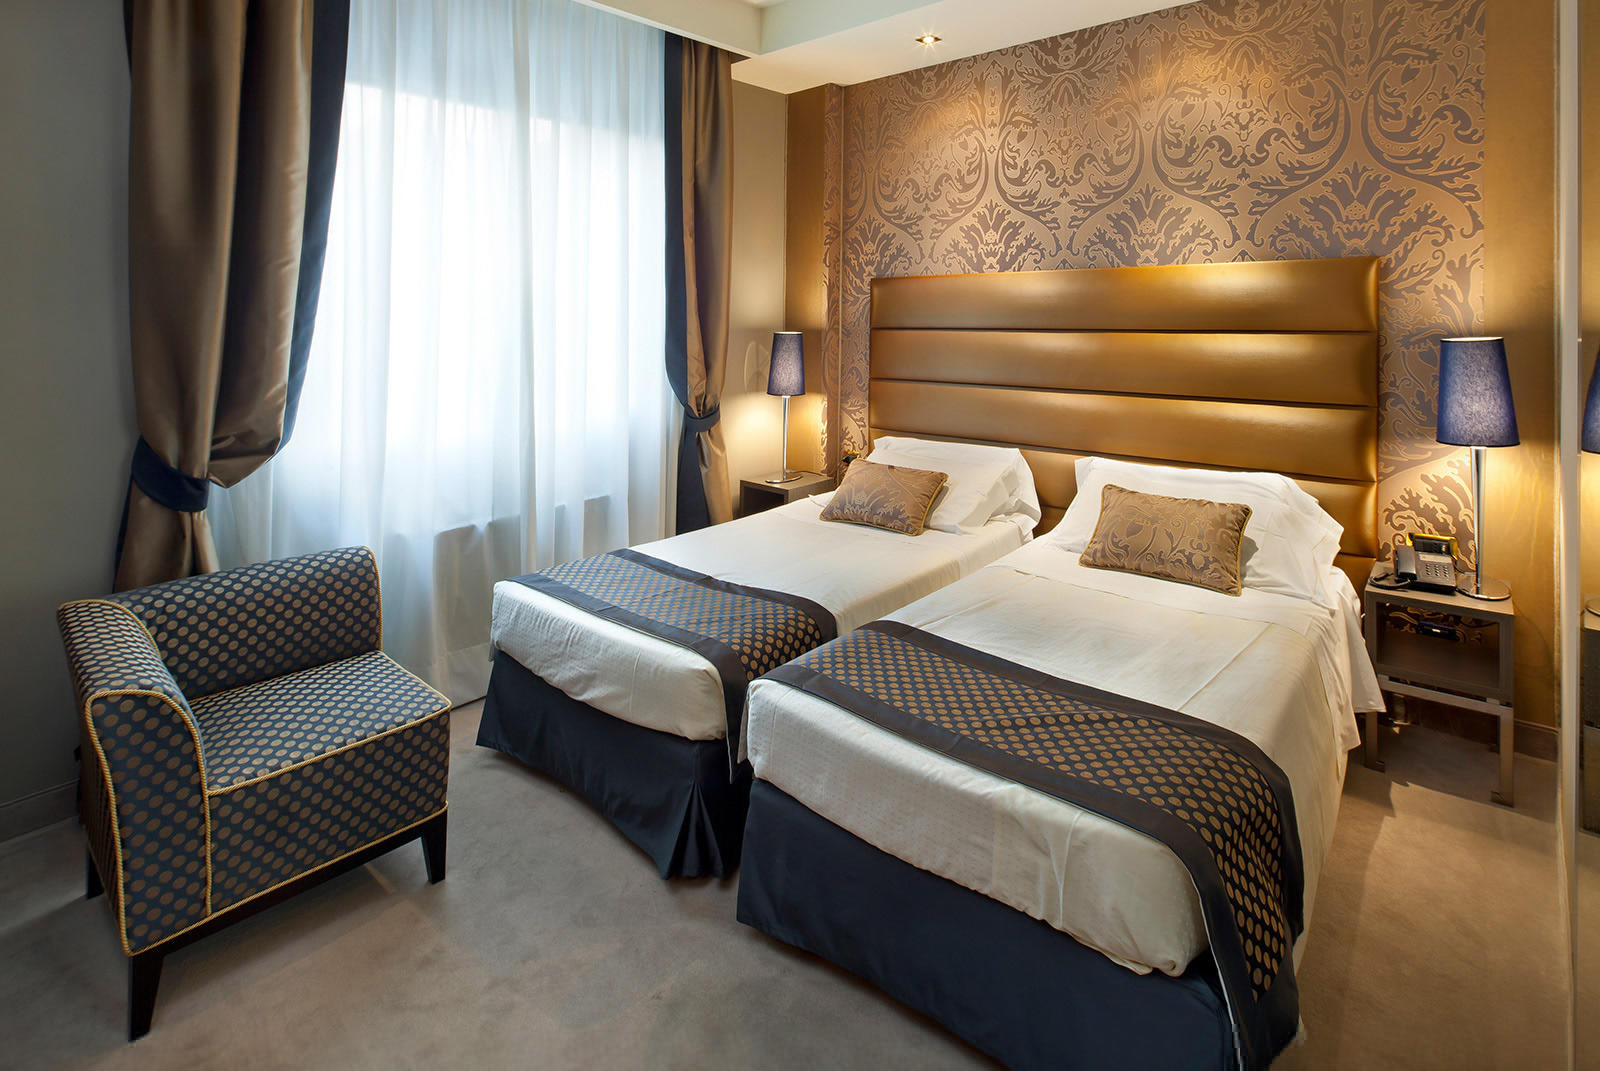 Superior Double Room at Hotel Mozart in Milan